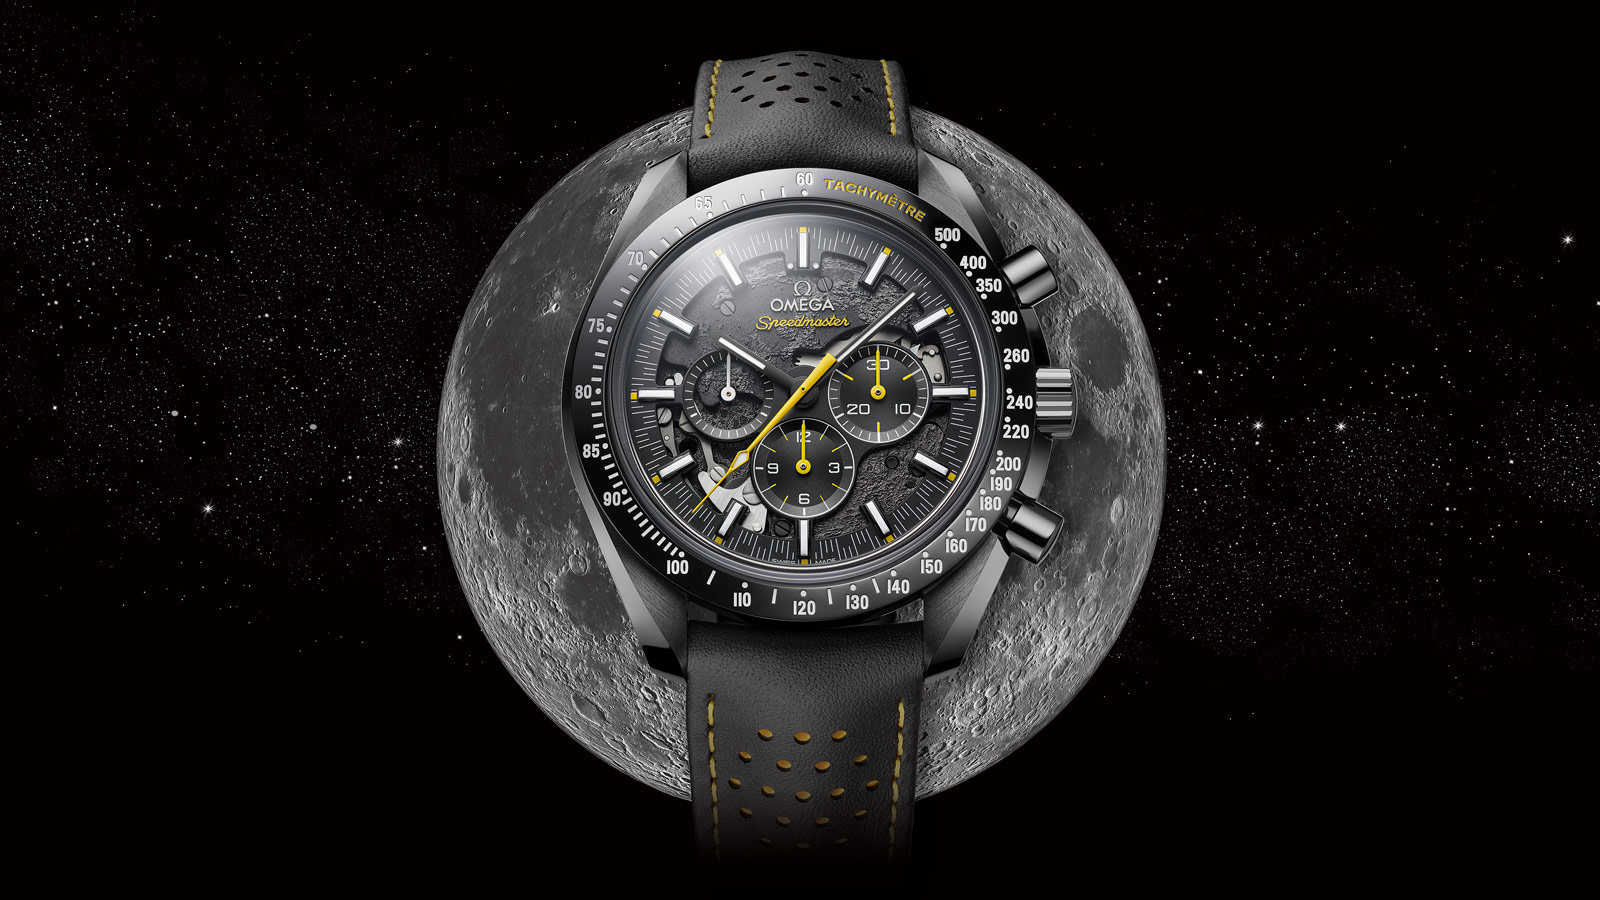 THE MOON ON YOUR WRIST